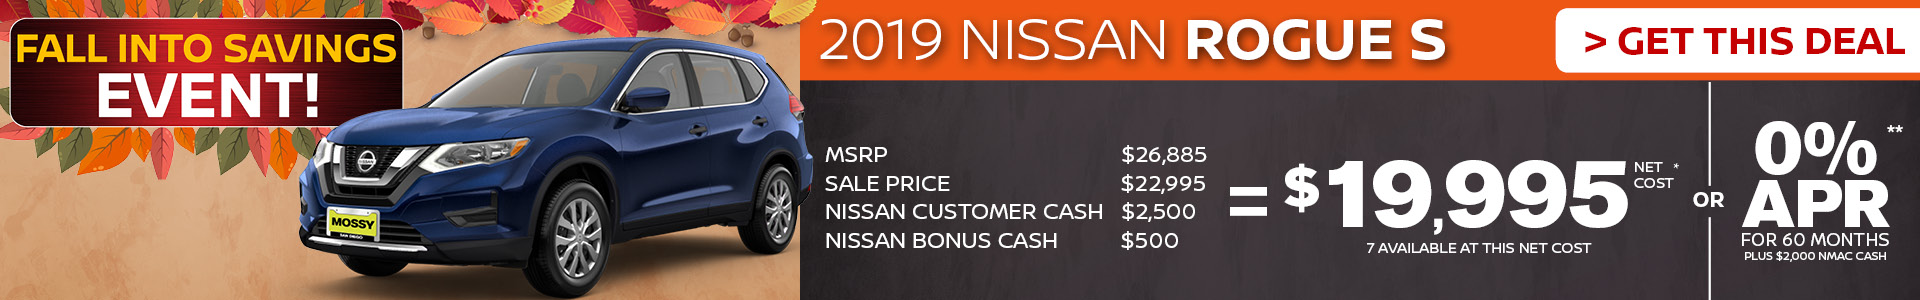 Mossy Nissan - Nissan Rogue S $19,995 Purchase